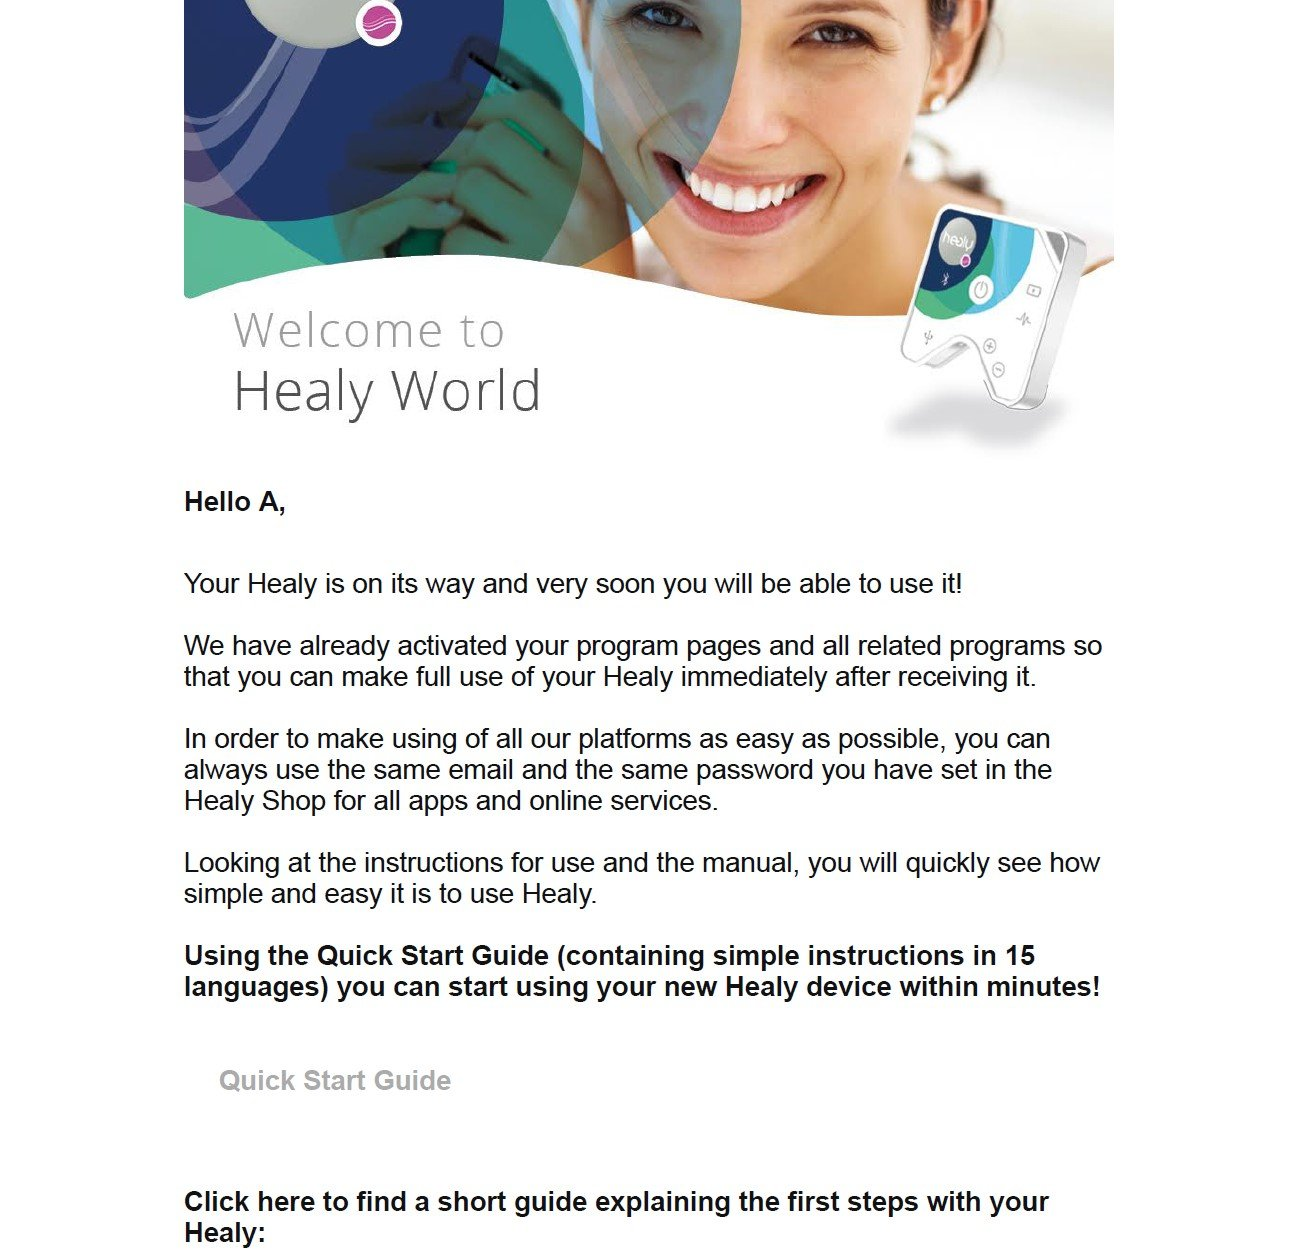 Welcome letter from Healy